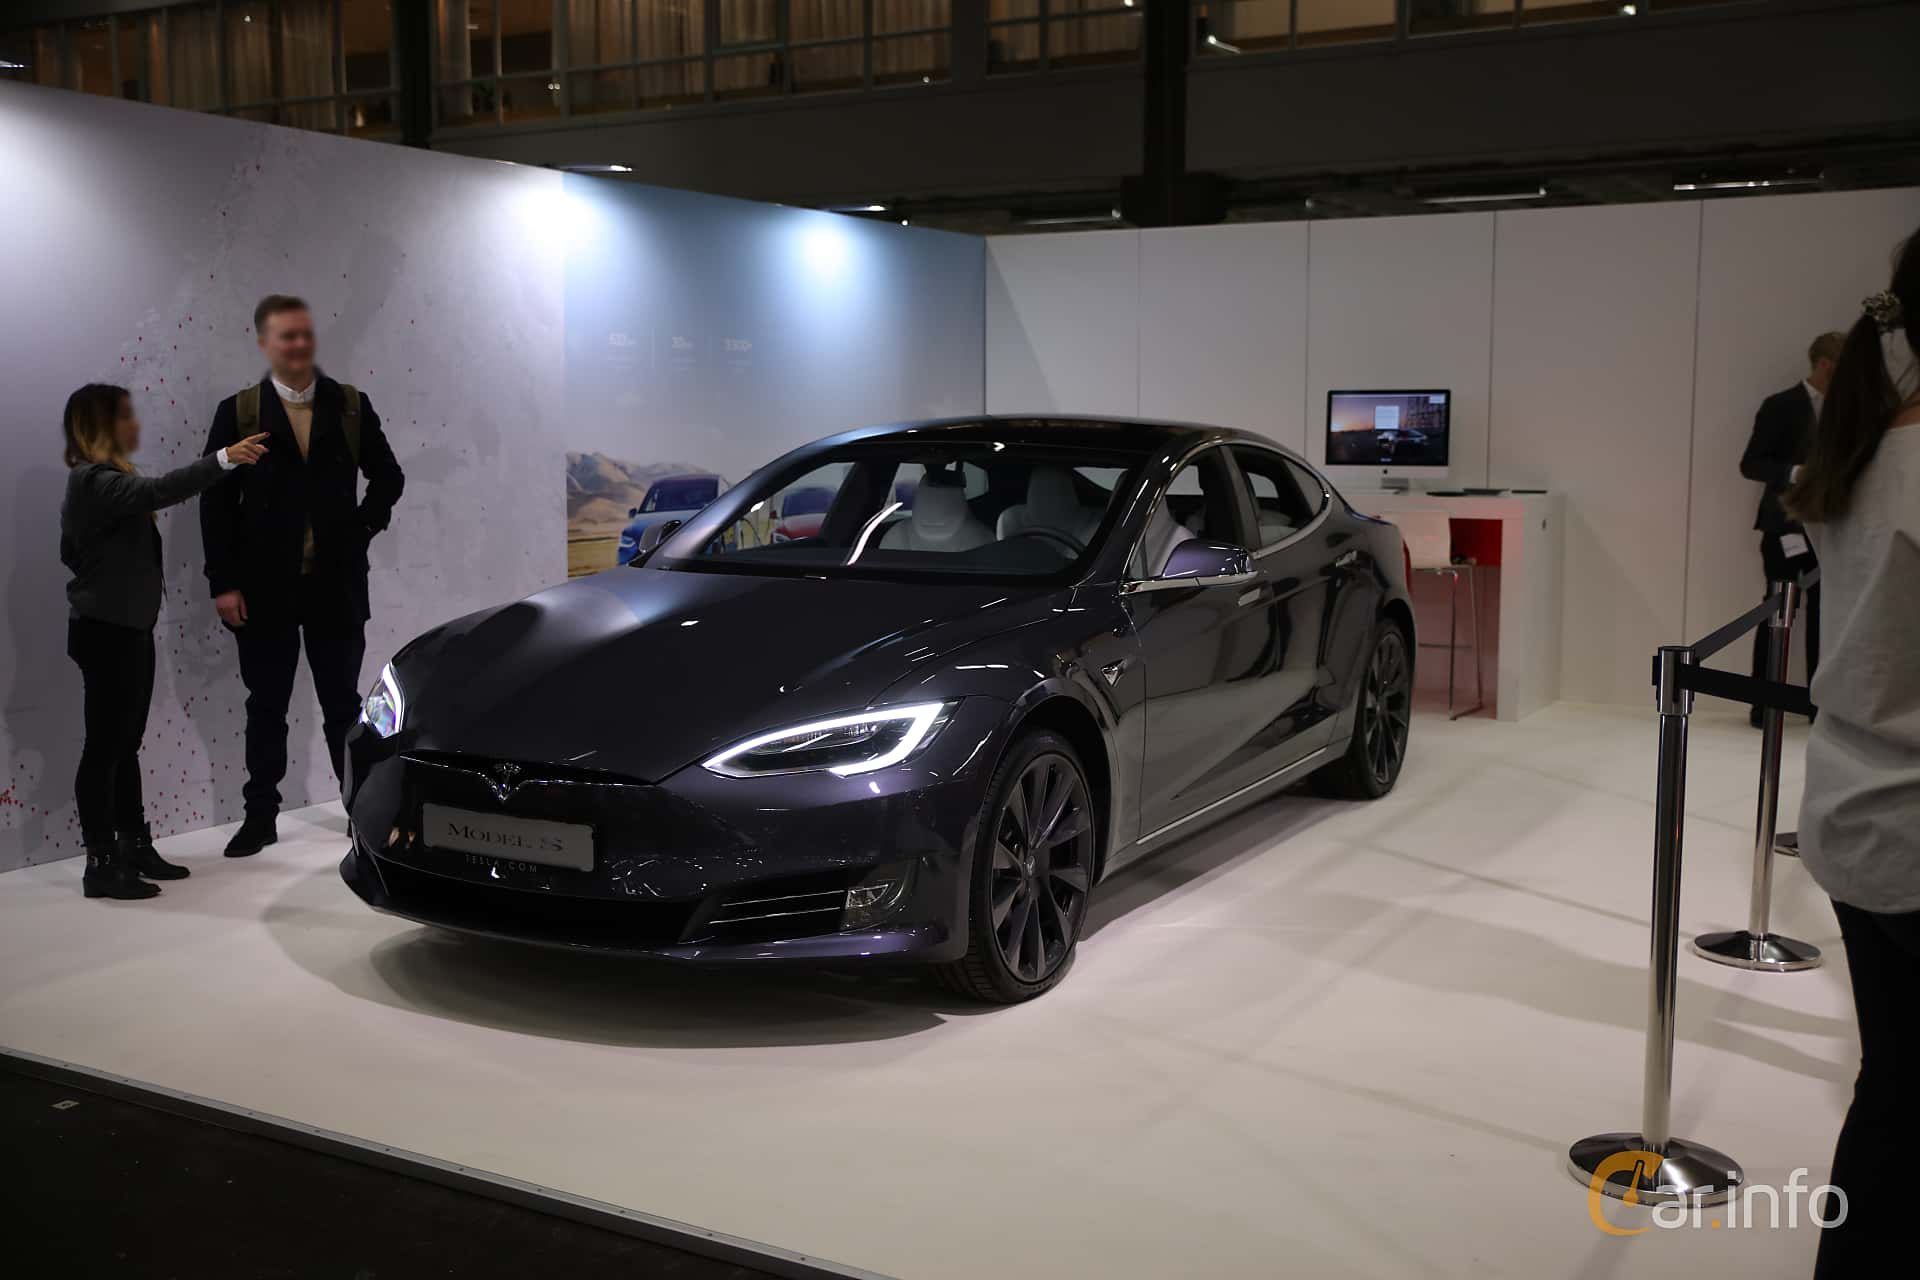 Tesla Model S 100D 100 kWh AWD Single Speed, 423hp, 2018 at eCar Expo Göteborg 2018